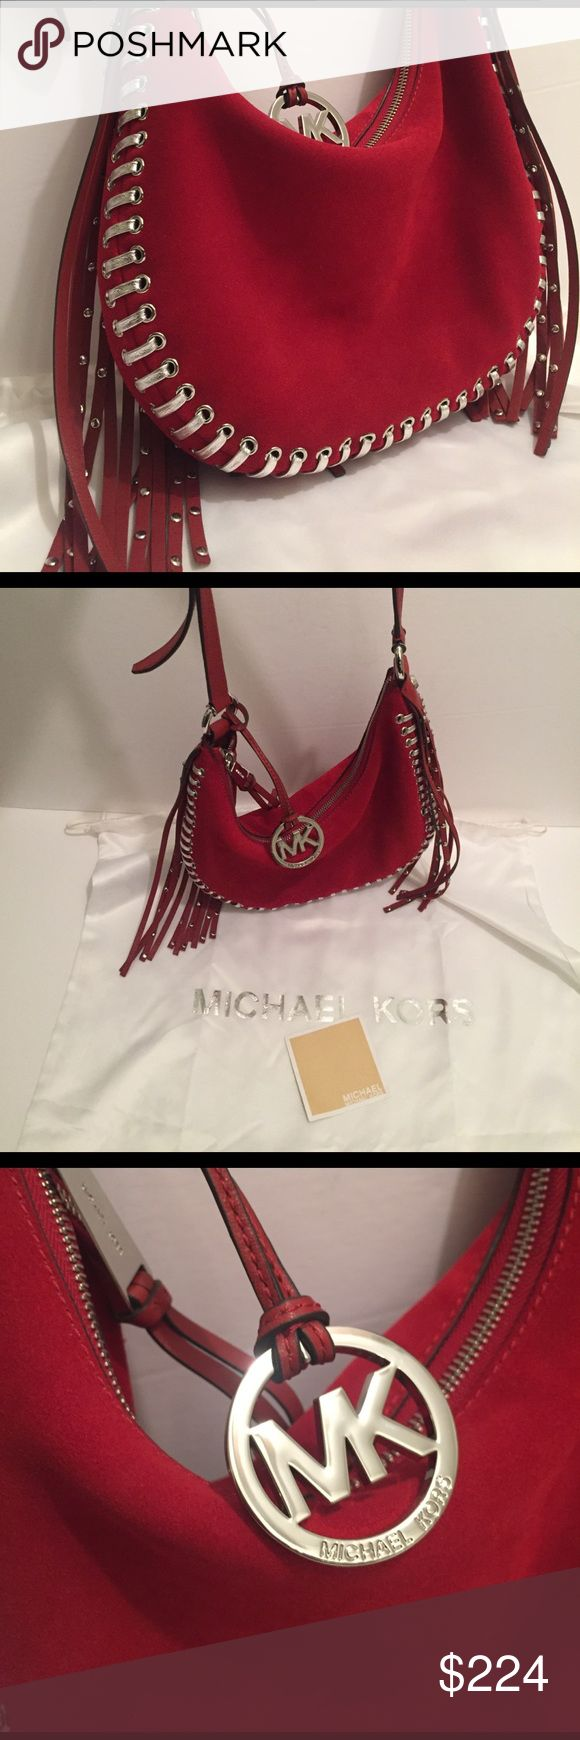 Michael Kors Rhea Grommet Small Red Suede Bag Long fringe on both sides is studded with silver nail heads. Genuine suede leather. MK hardware. Leather strap with a 22 inch drop is adjustable. Zip top closure closure. Detailed whipped stitching in leather. Silver MK hang charm. Inside signature lined. Back inside wall a zipper compartment. Inside front wall 2 slip pockets. Measures 9 inches High, 12 inches wide, by 2 inches deep. Never used bag. Should part has very little discoloration, see…